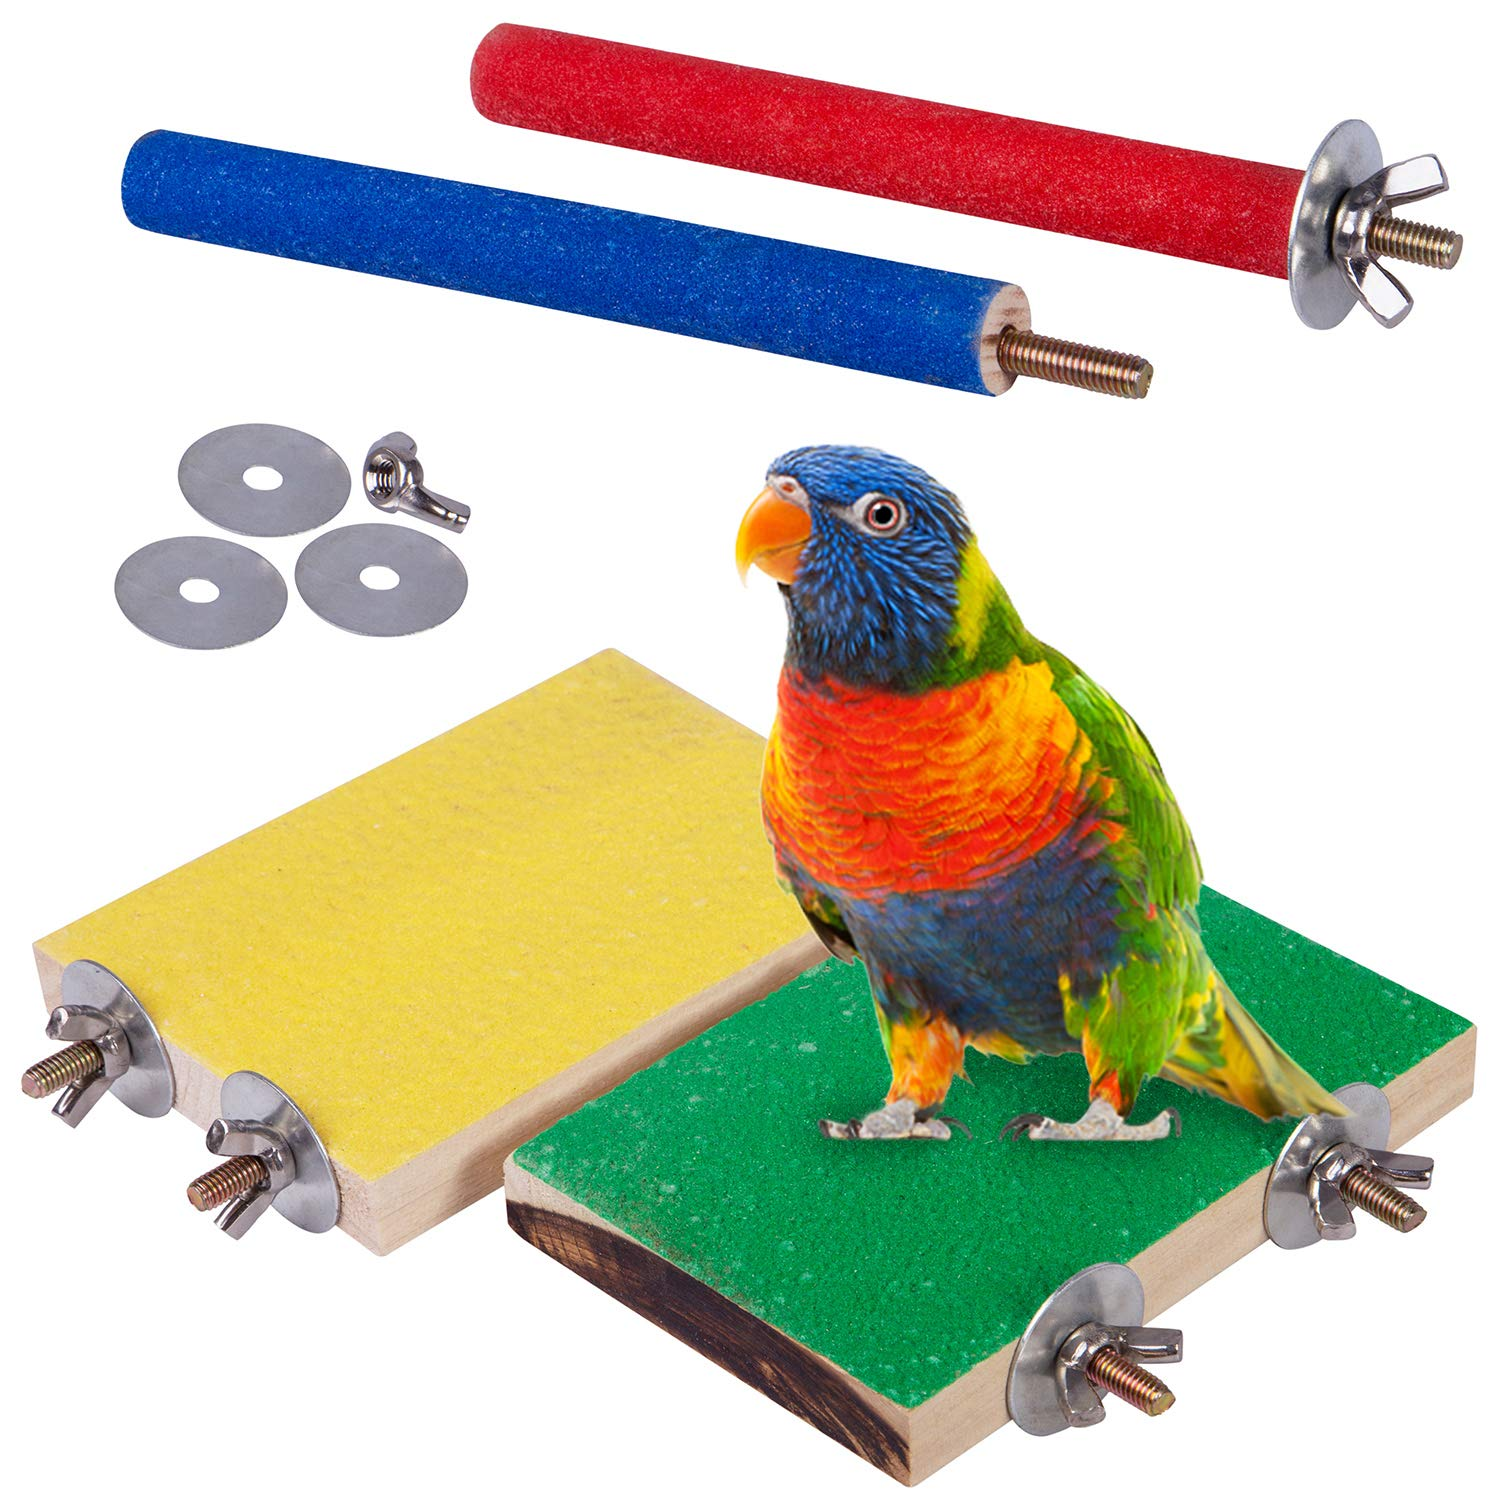 Petsvv 4 PCS Bird Perch Stand Toy, Wood Parrot Perch Stand Platform Paw Grinding Stick, Cage Accessories Exercise Toys Budgies Parakeet Cockatiel Conure Hamster Gerbil Rat Mouse by Petsvv